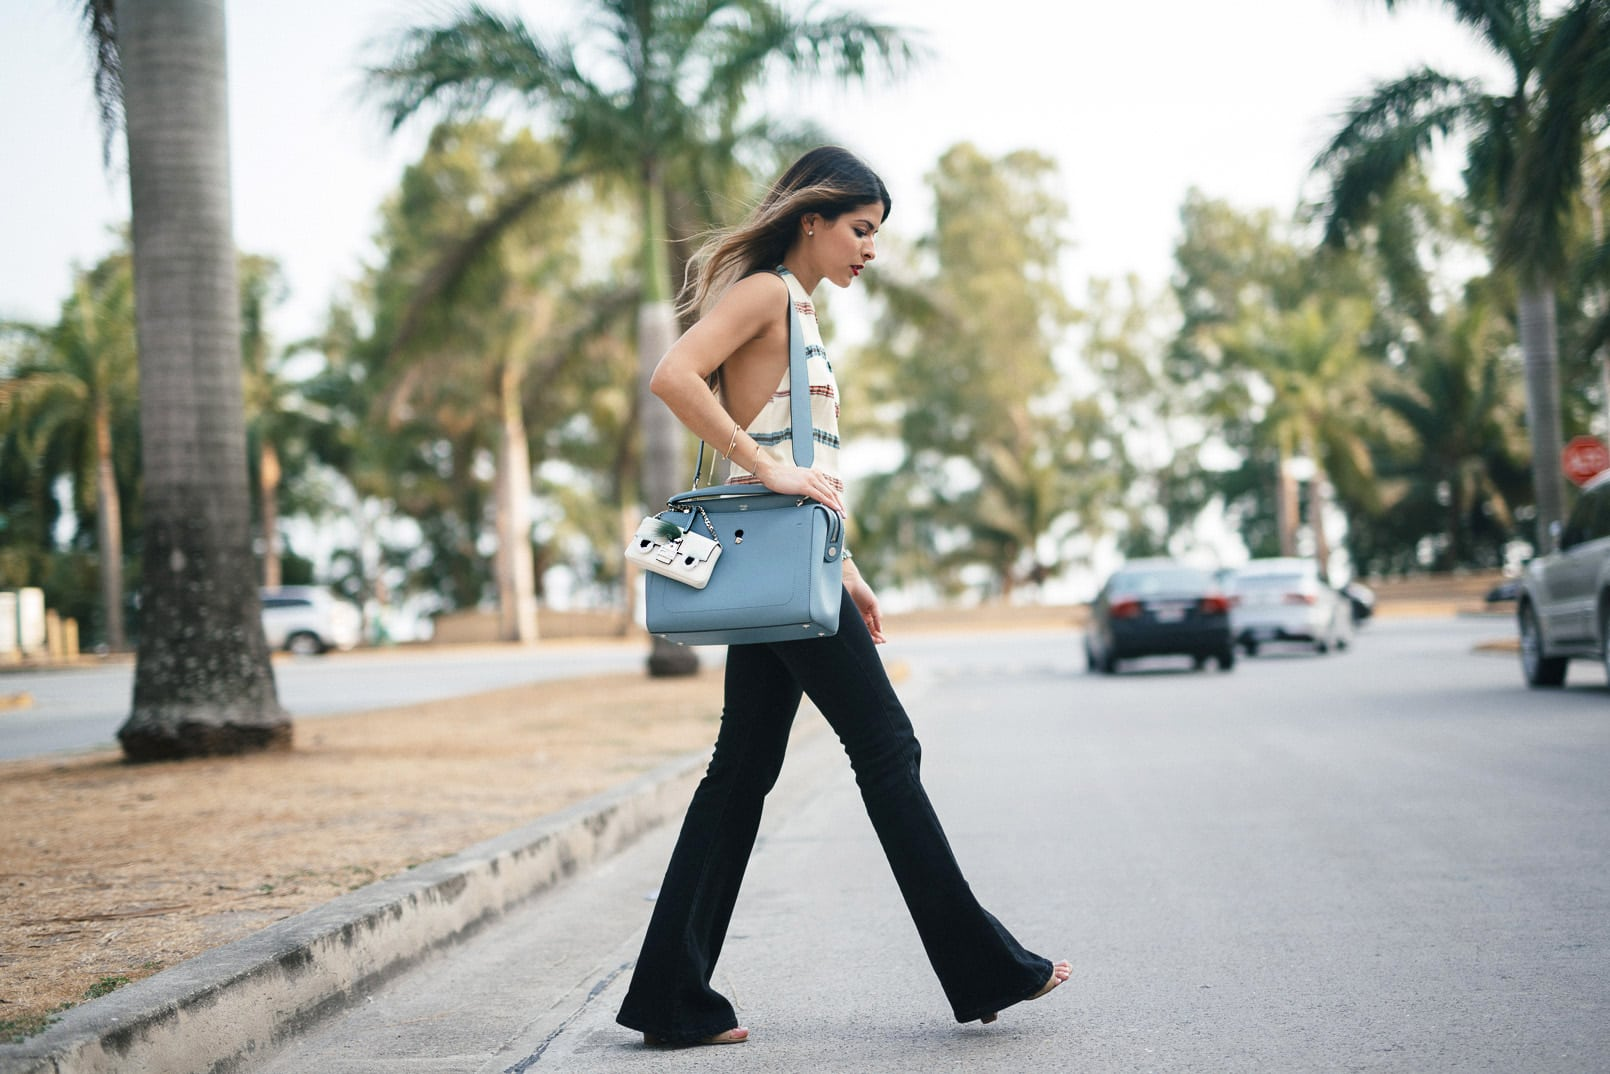 Pam Hetlinger, The Girl From Panama wearing an H&M Halter top, Mango Flare Jeans, Fendi DotCom bag, M.A.C Cosmetics velvetease lip pencil, and Fendi micro bag.